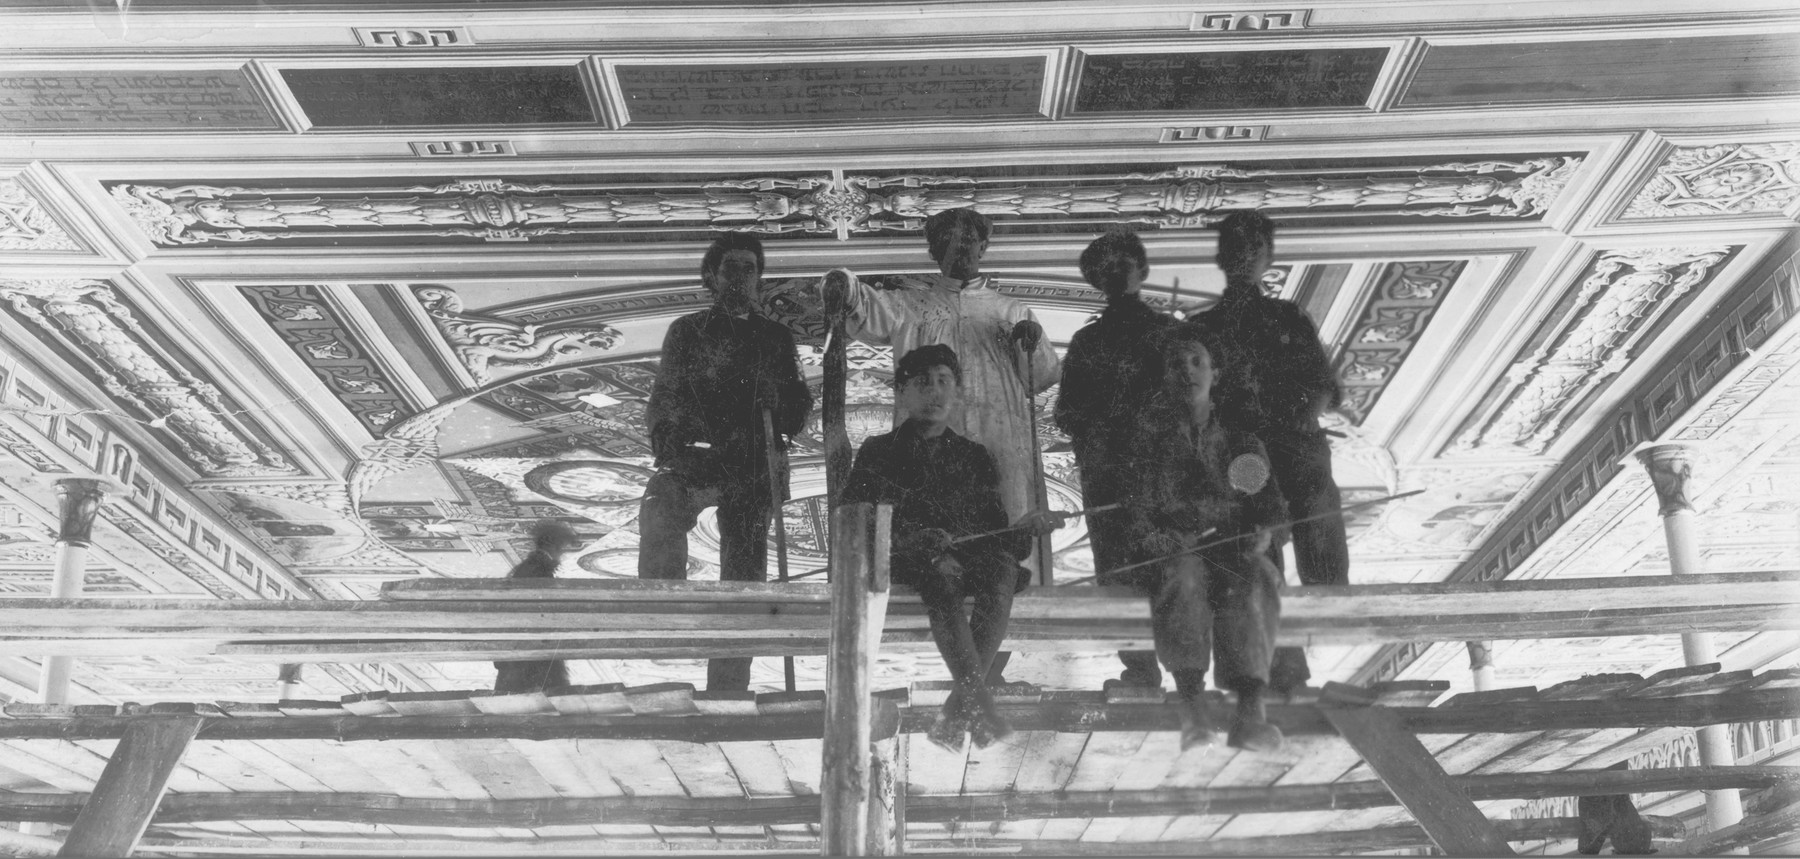 Perec Willenberg (pictured center, wearing white) and his staff paint the old synagogue ceiling mural in Czestochowa.